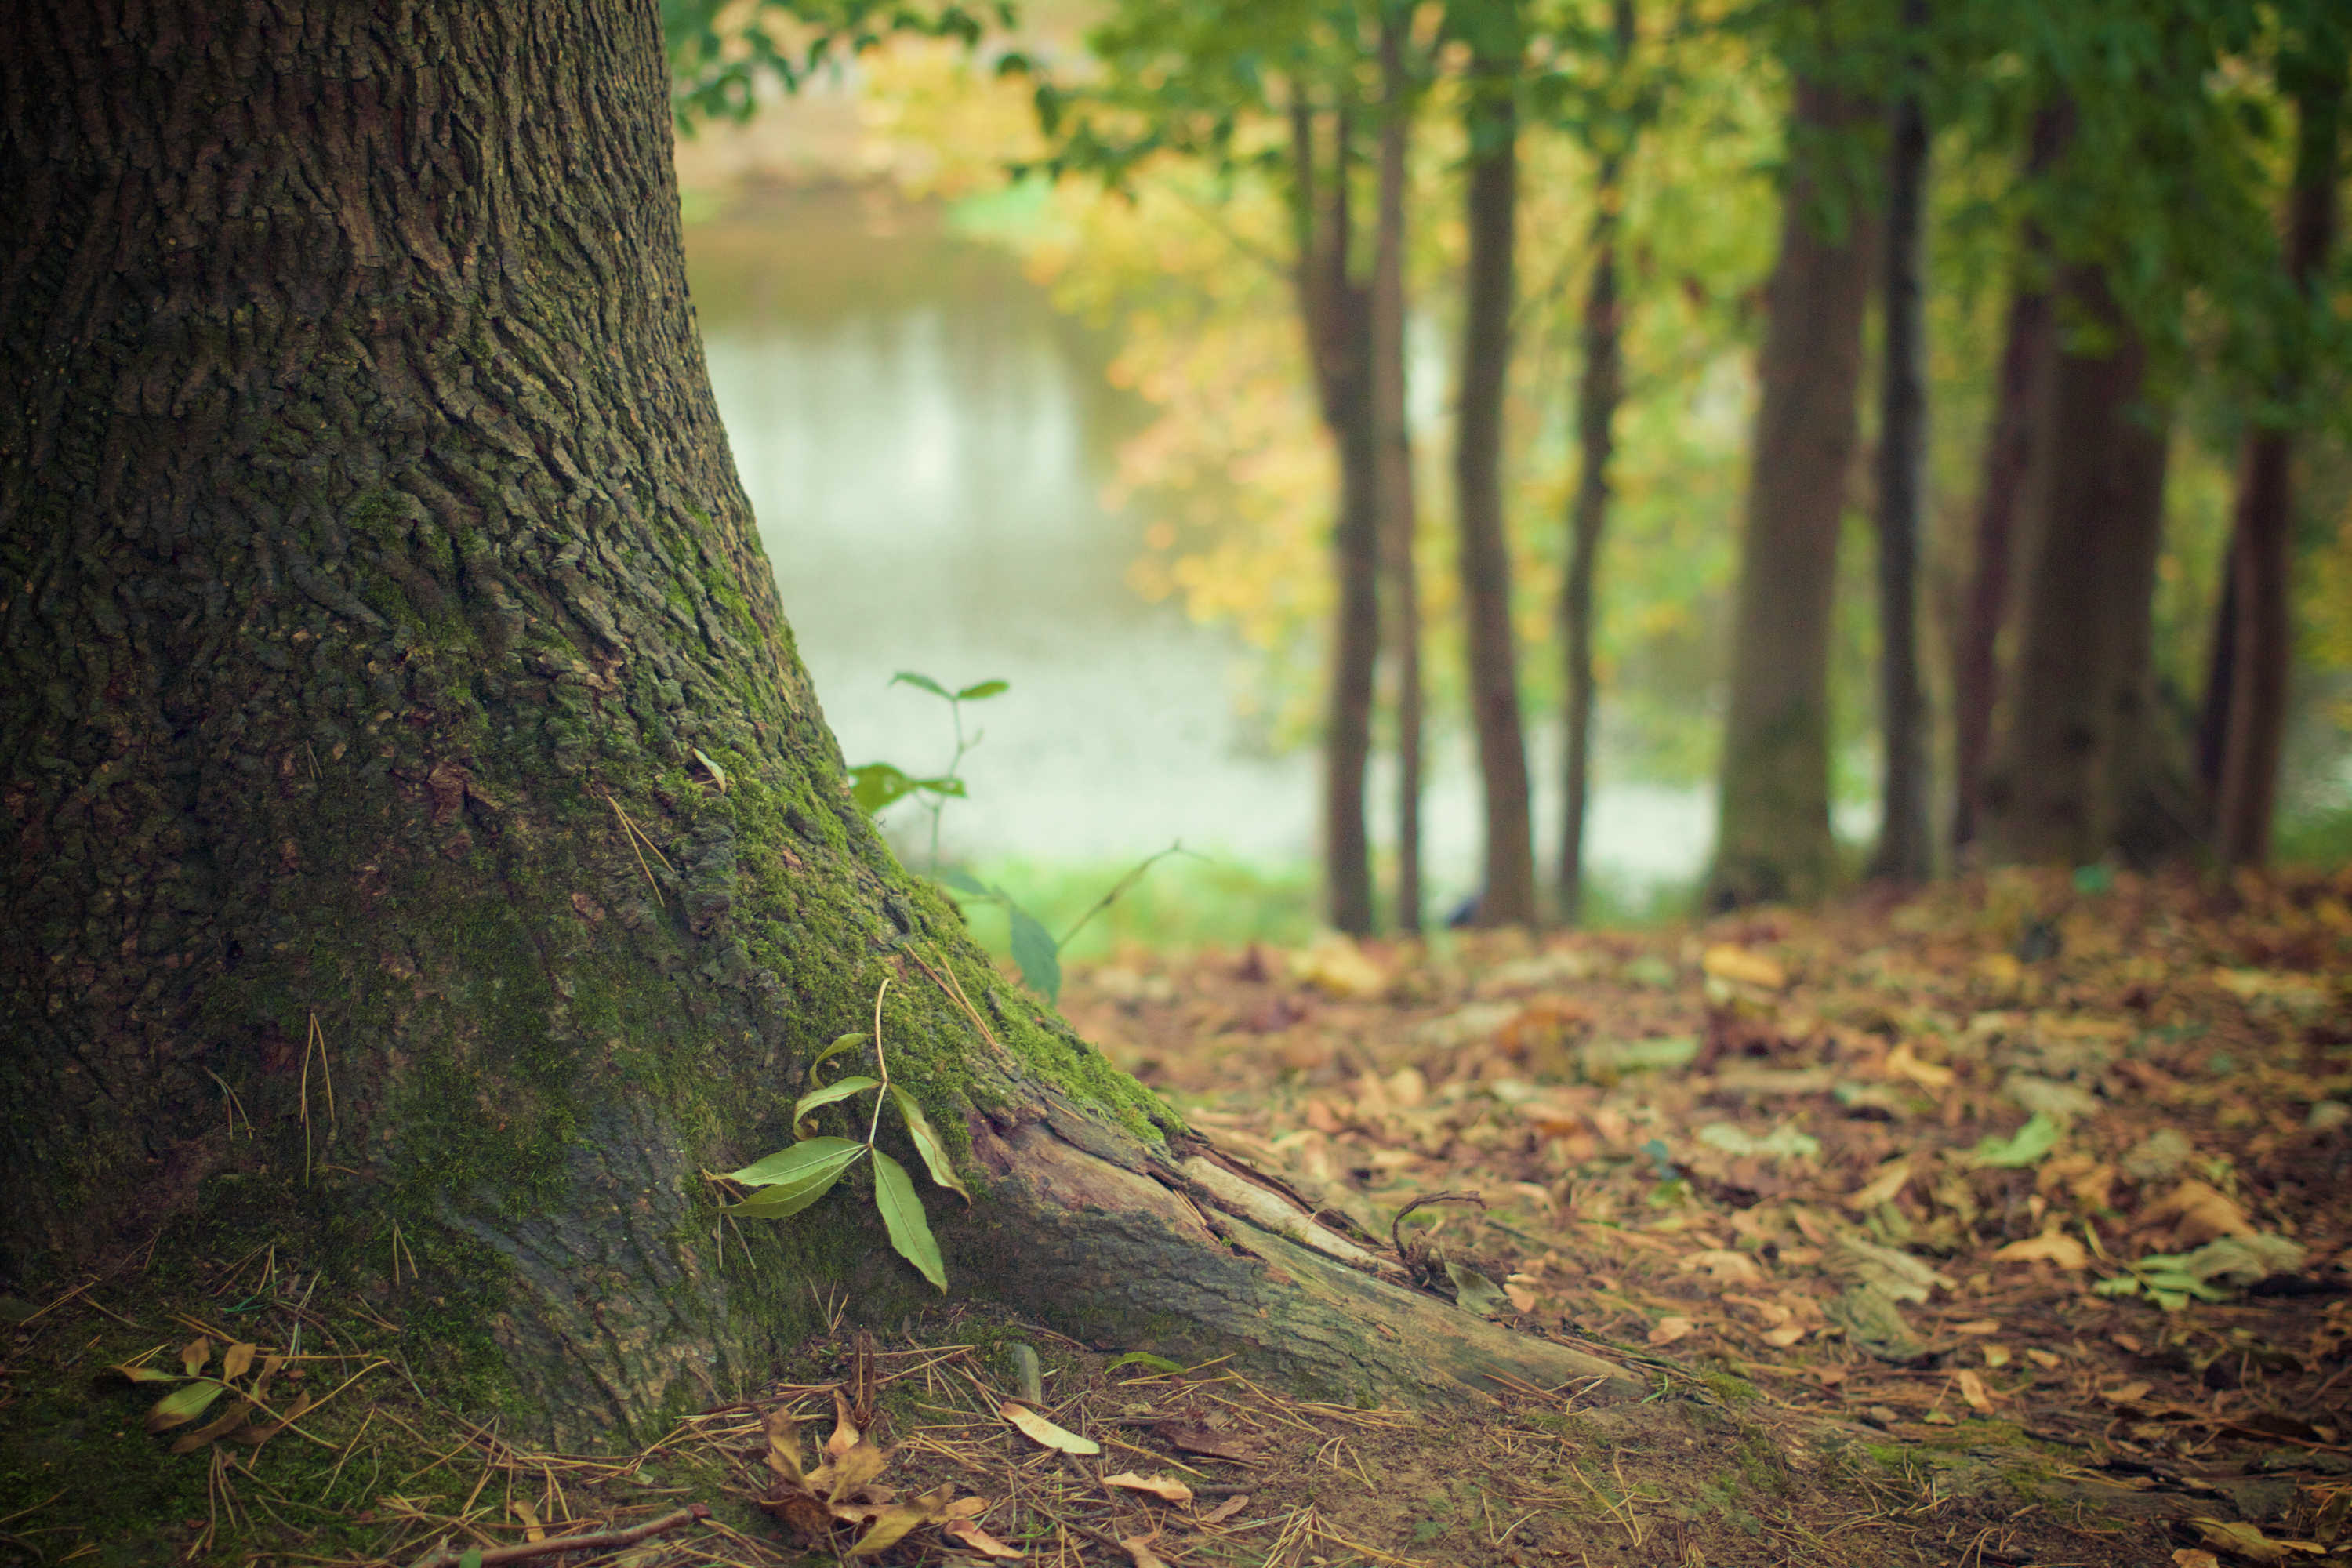 Free Nature Stock Photos Download For Free